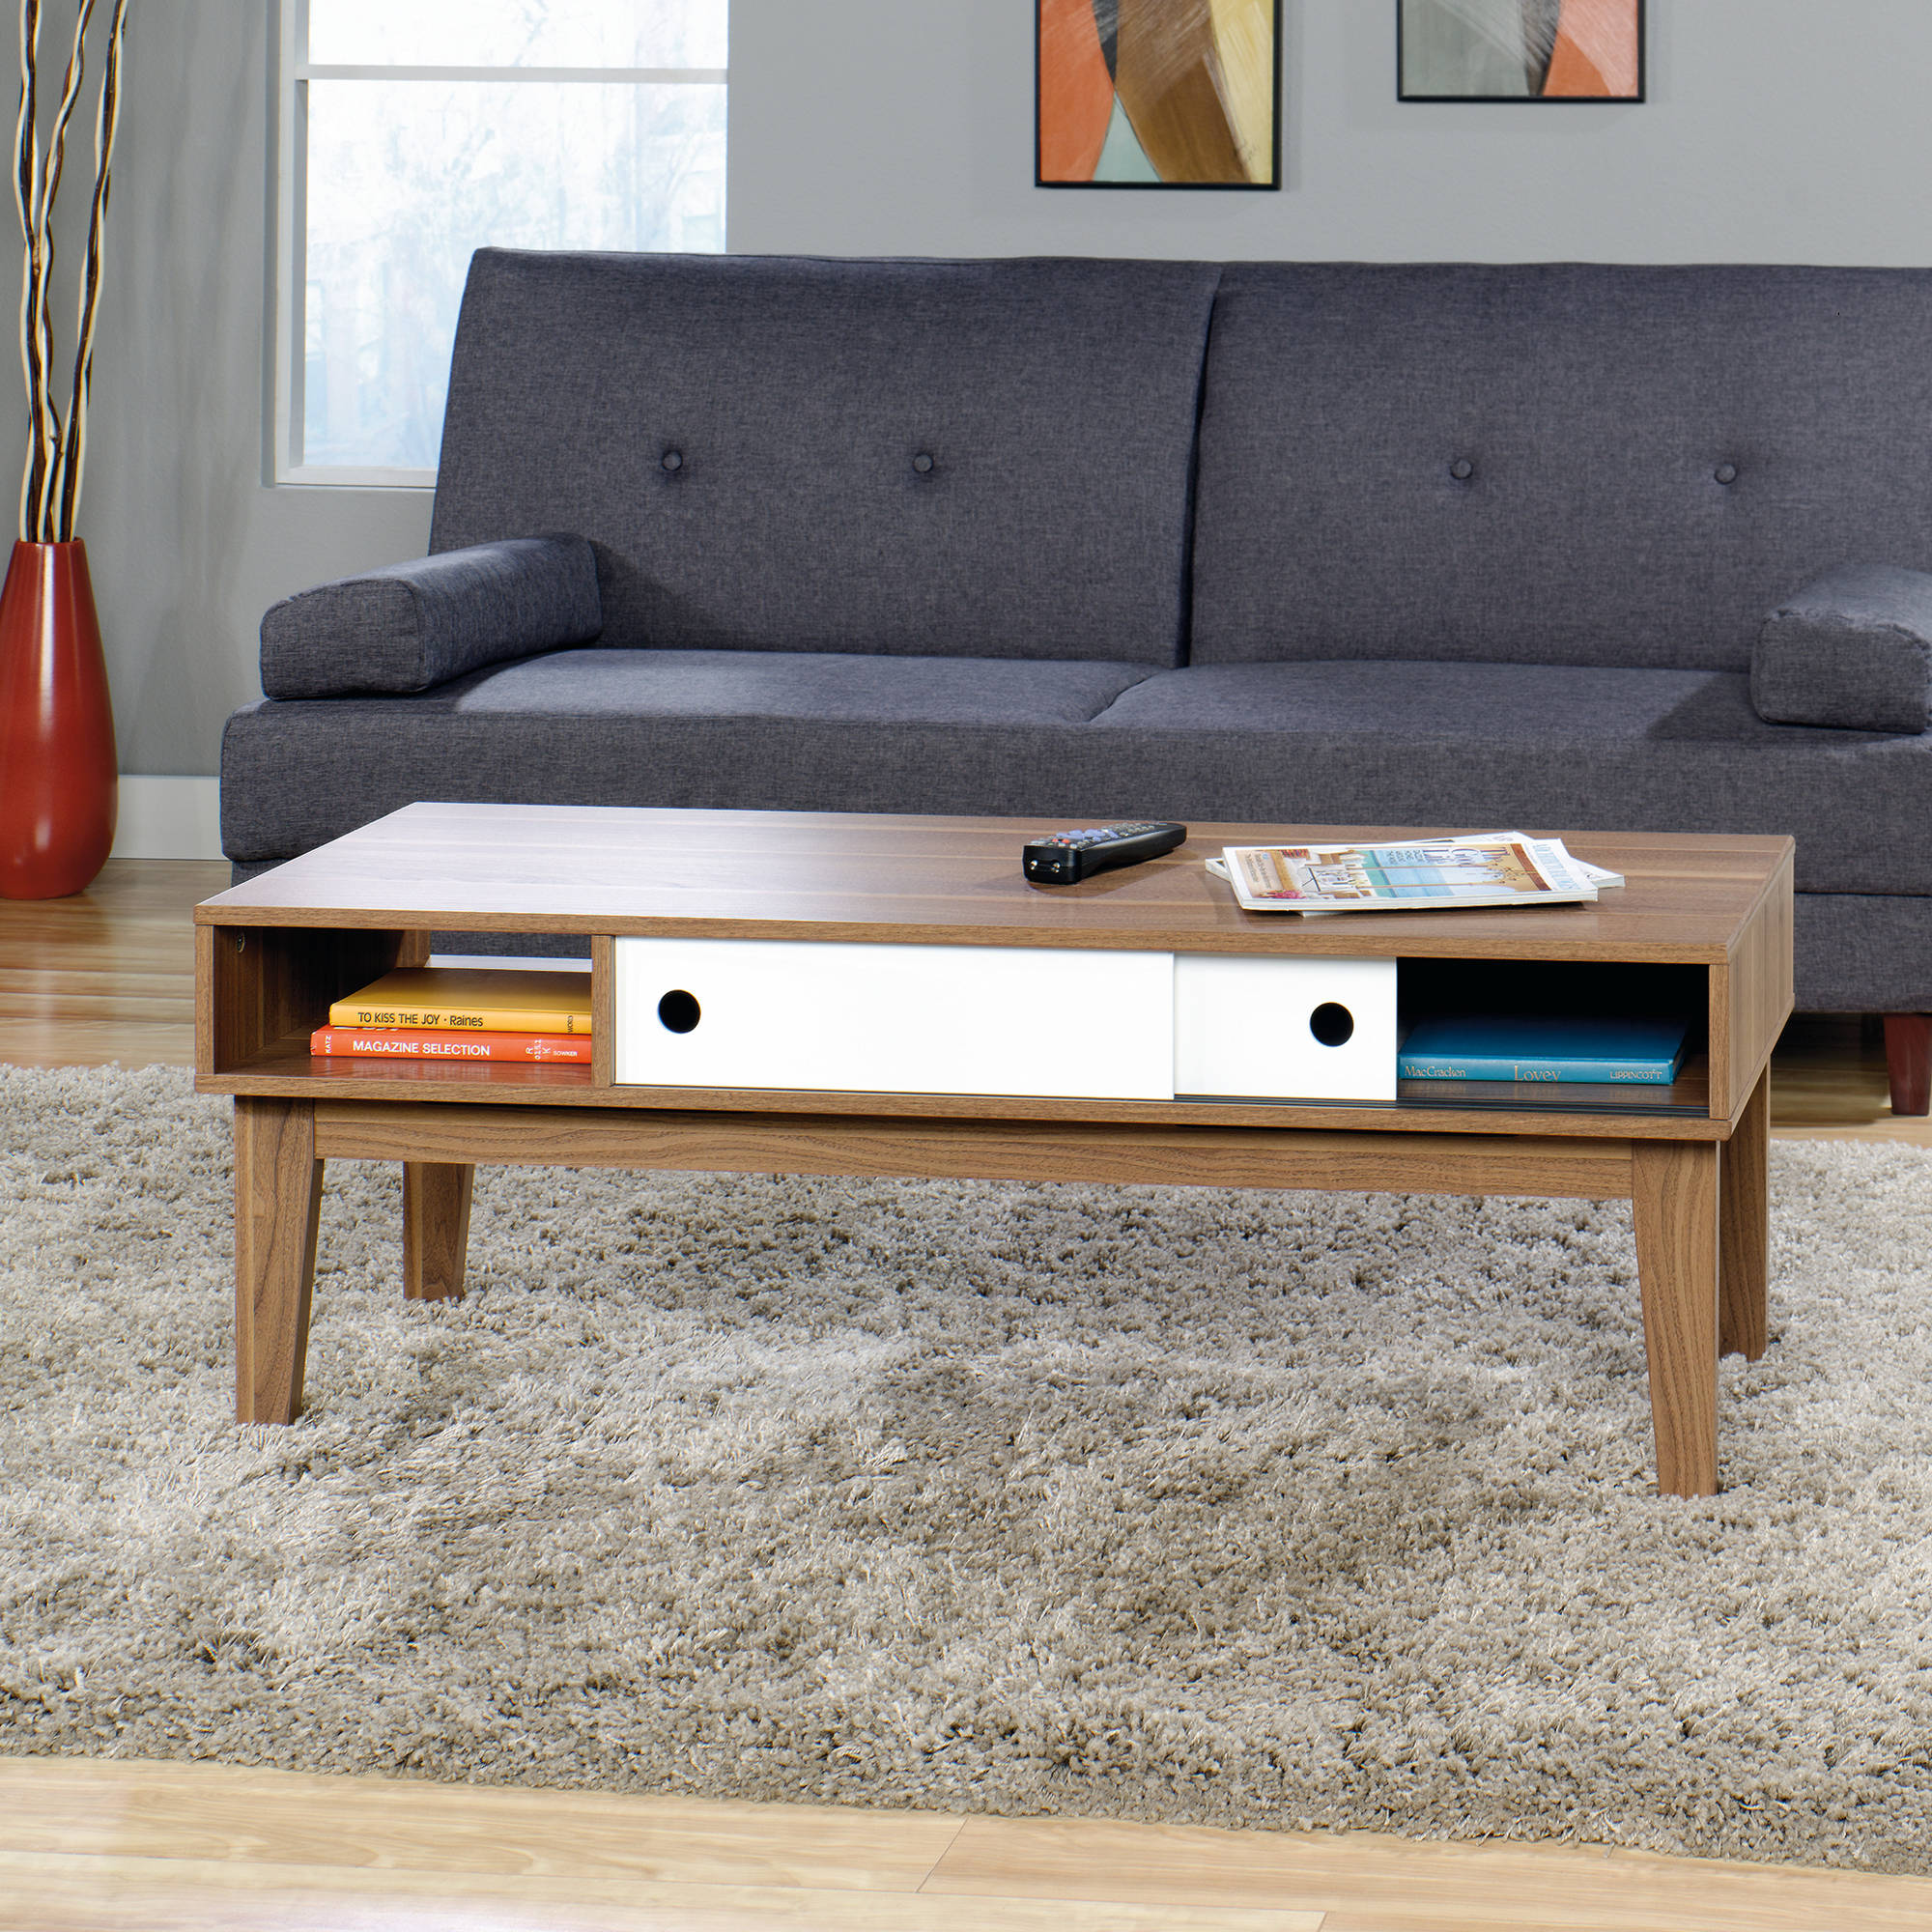 Sauder Soft Modern Coffee Table Walnut Finish with White Accent